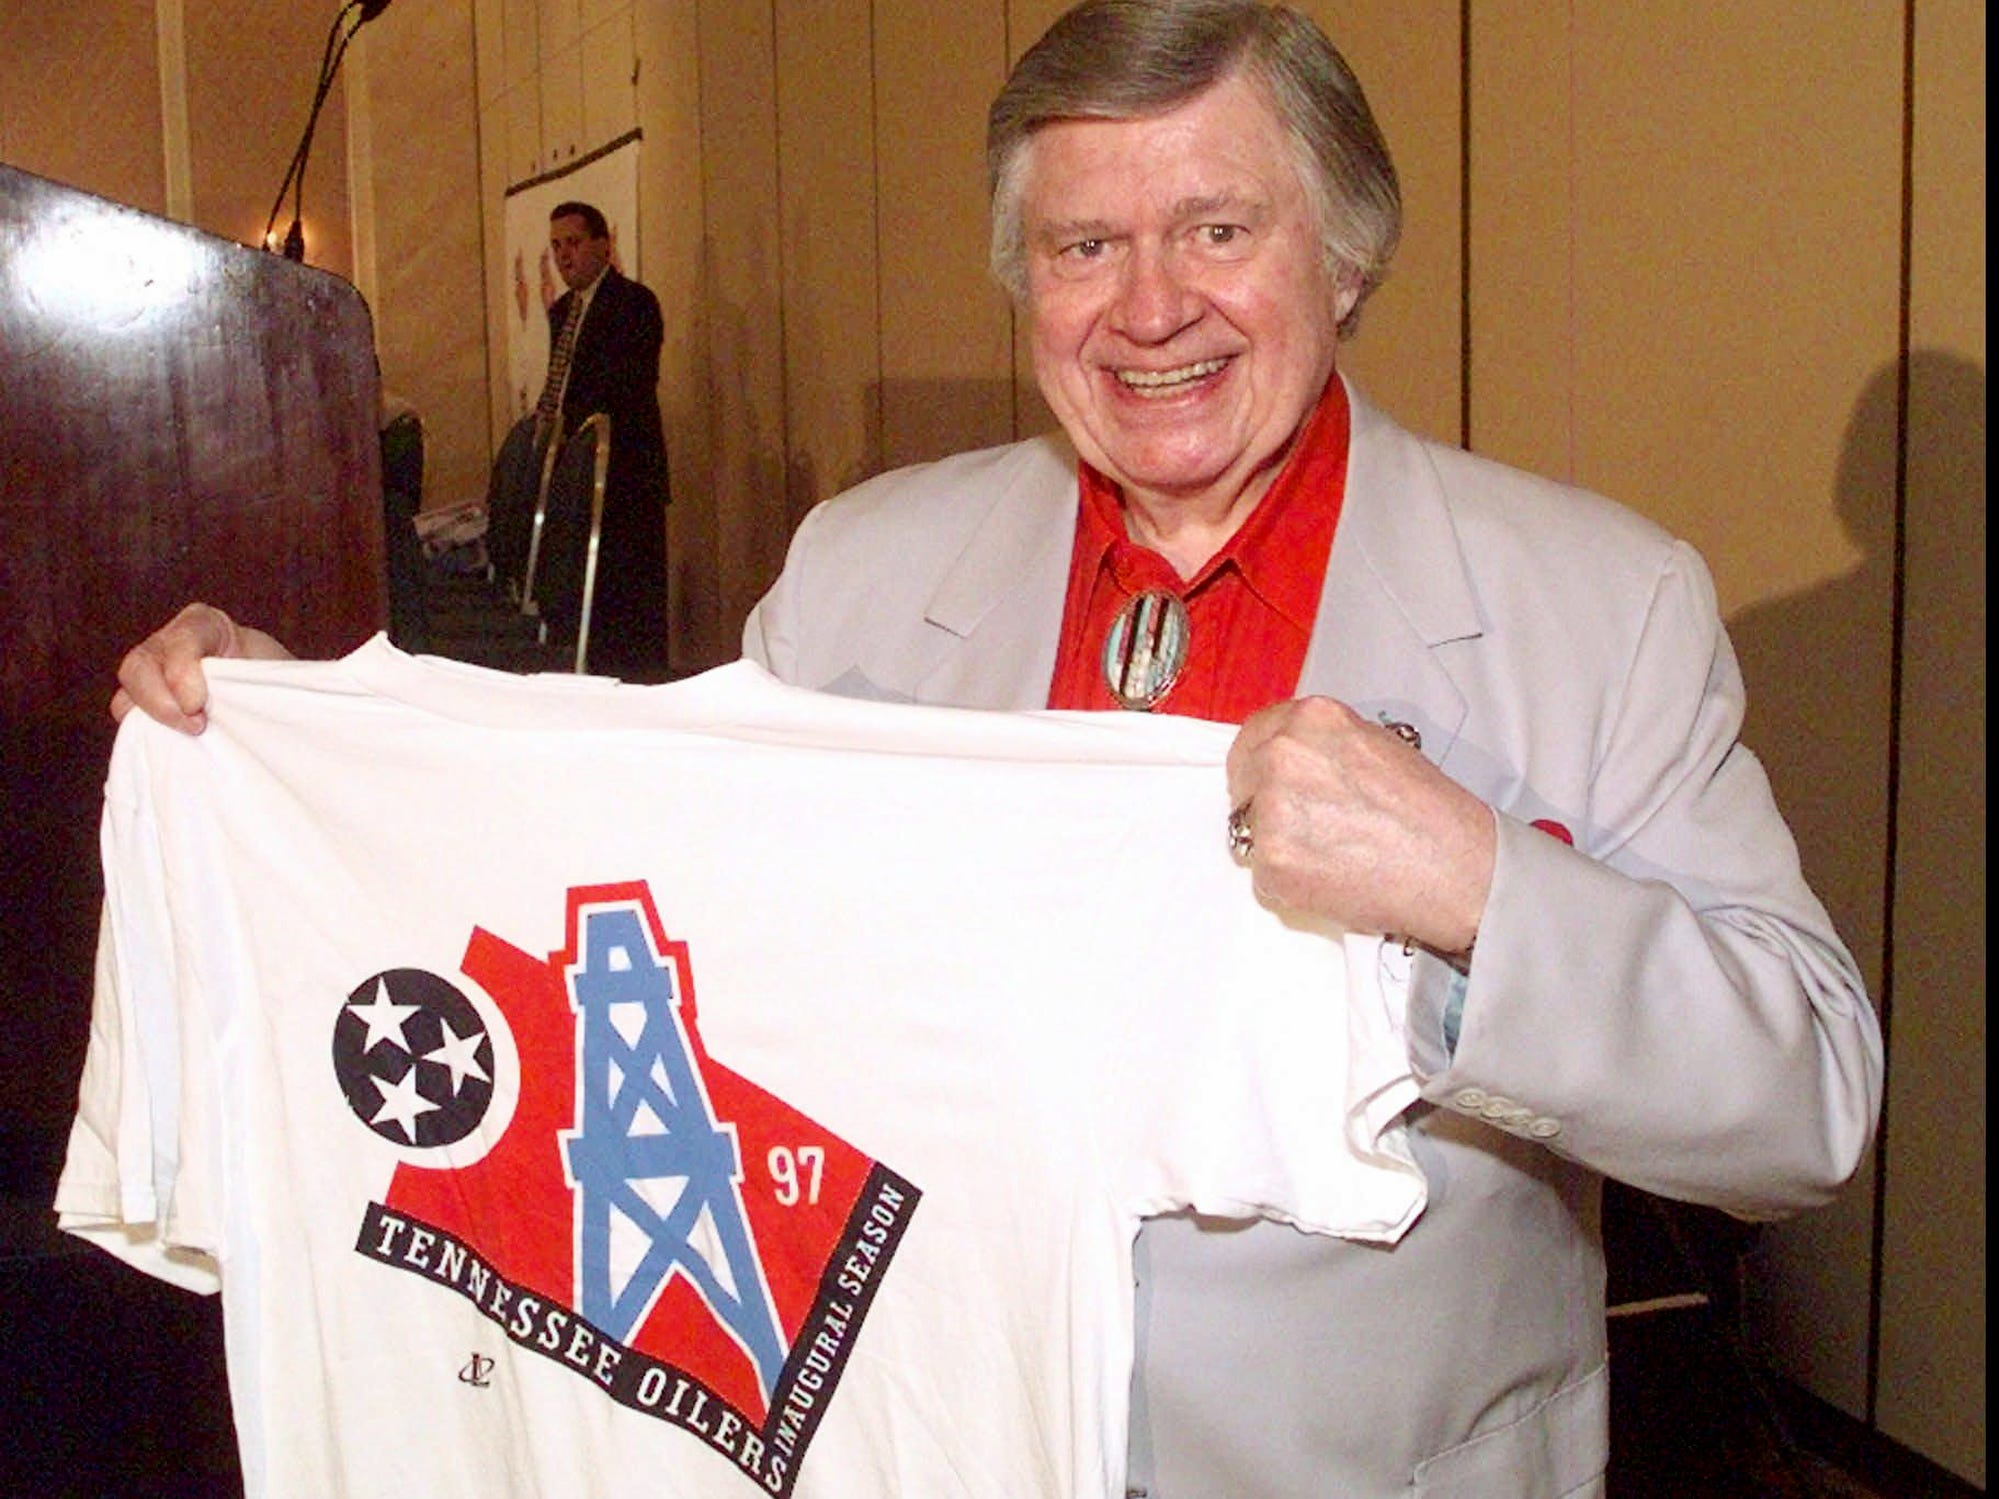 Houston Oilers owner Bud Adams shows off a T-shirt with the new logo the team will use this season when it moves to Tennessee. The logo was unveiled in Nashville during a press conference June 12, 1997. The plan is for the team to play two years in Memphis while its Nashville stadium is being built.